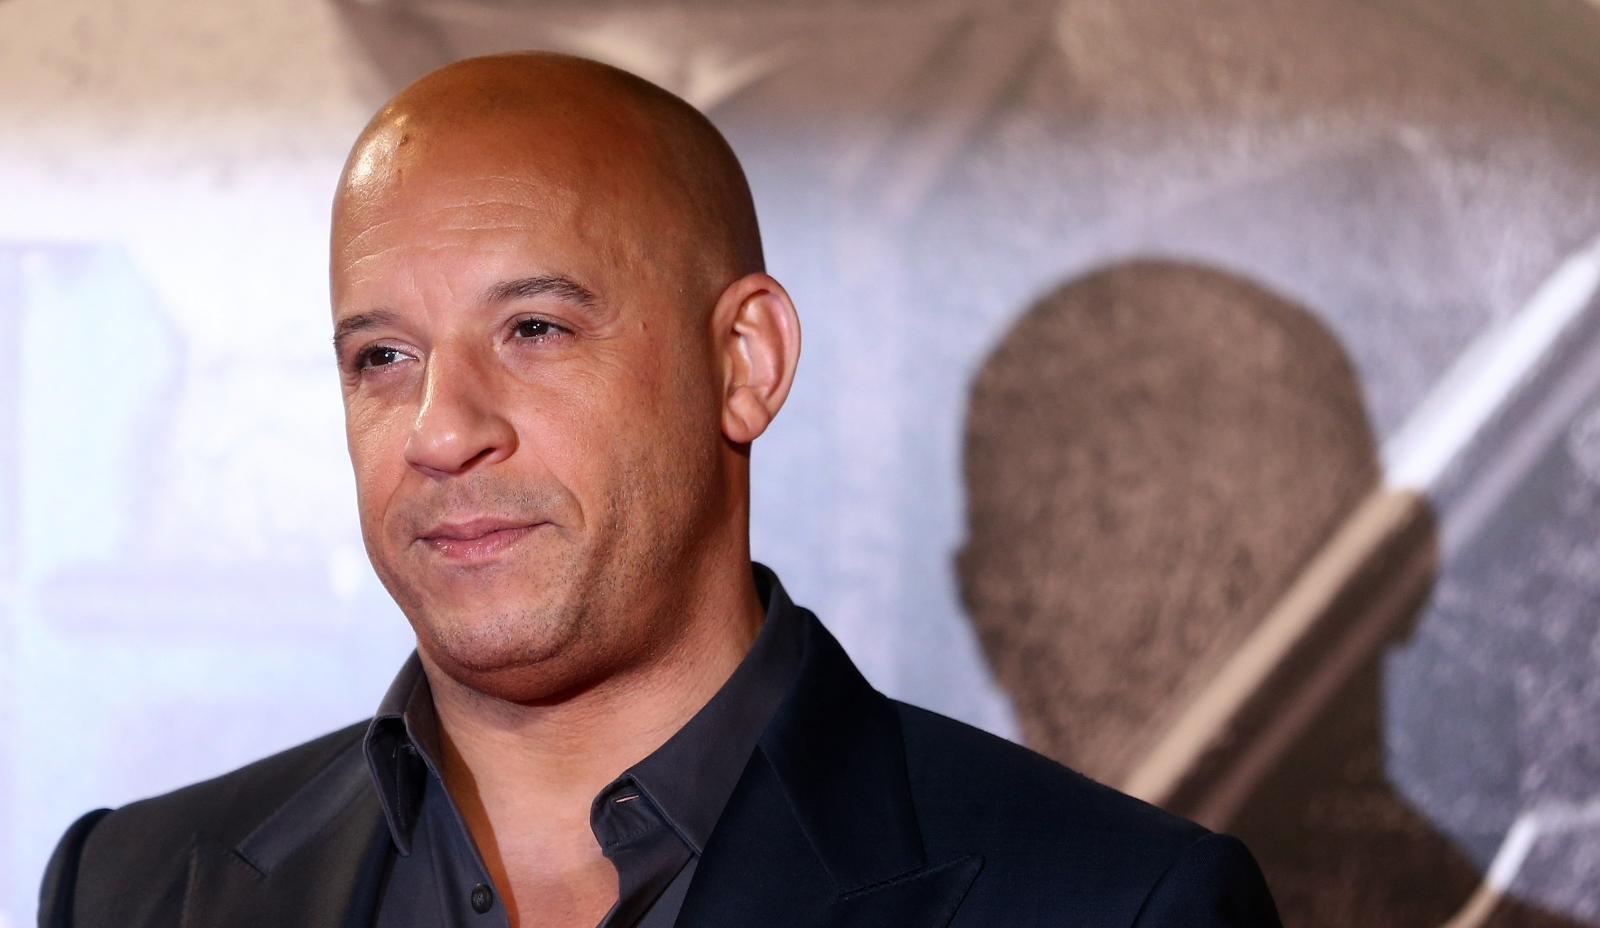 vin diesel s awkward interview with carol moreira actor